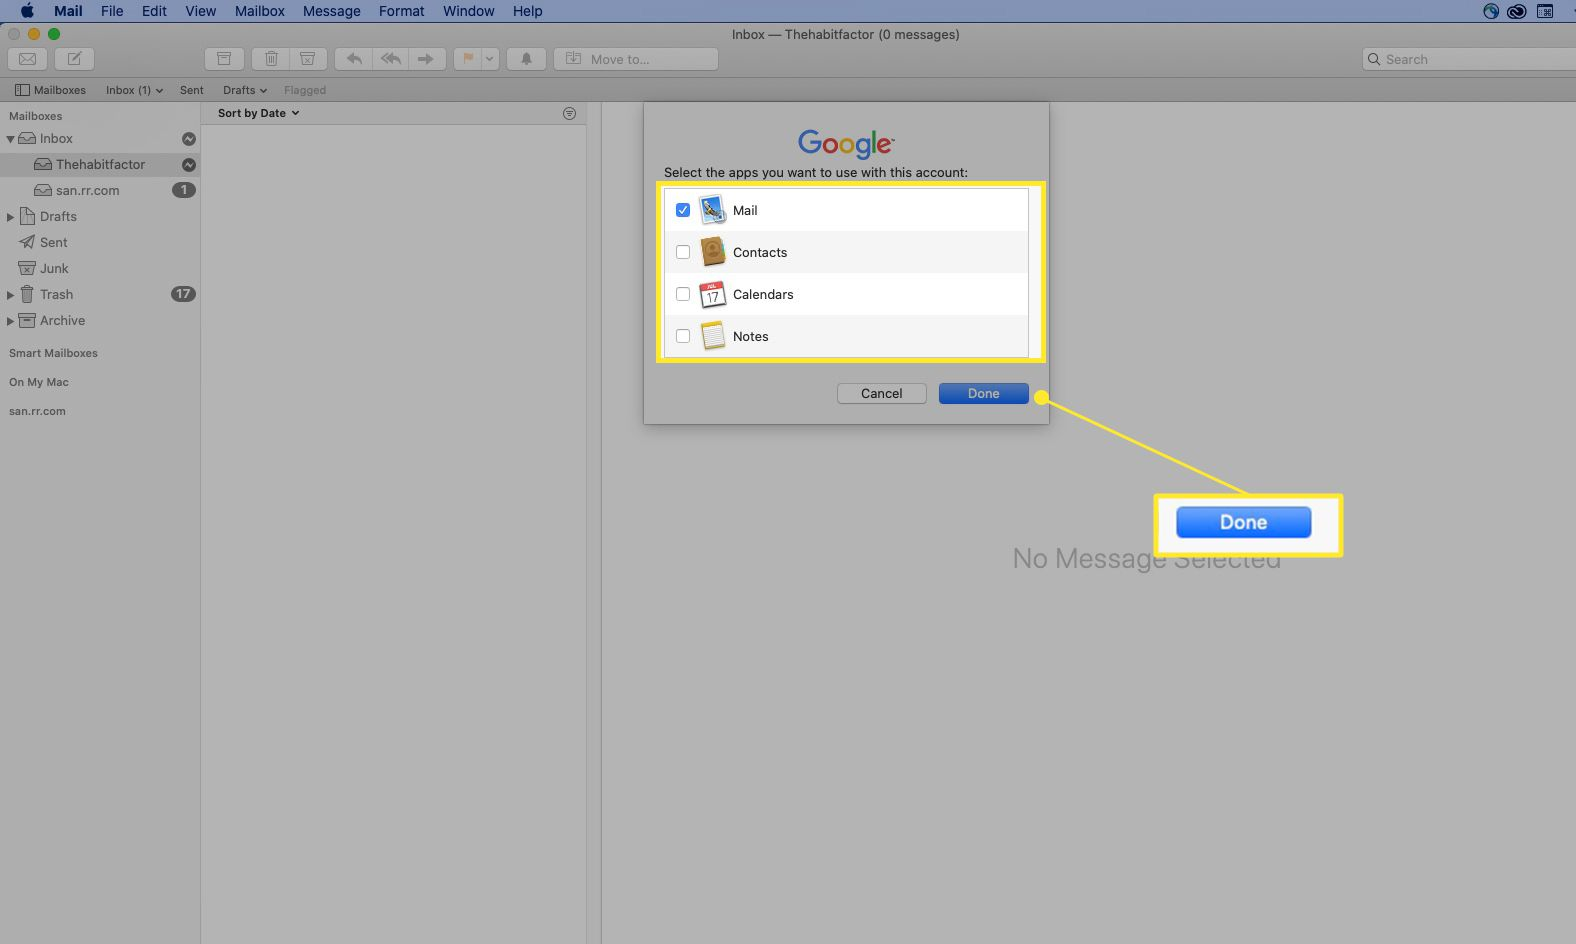 Options to sync with macOS in Gmail highlighted, and Done highlighted